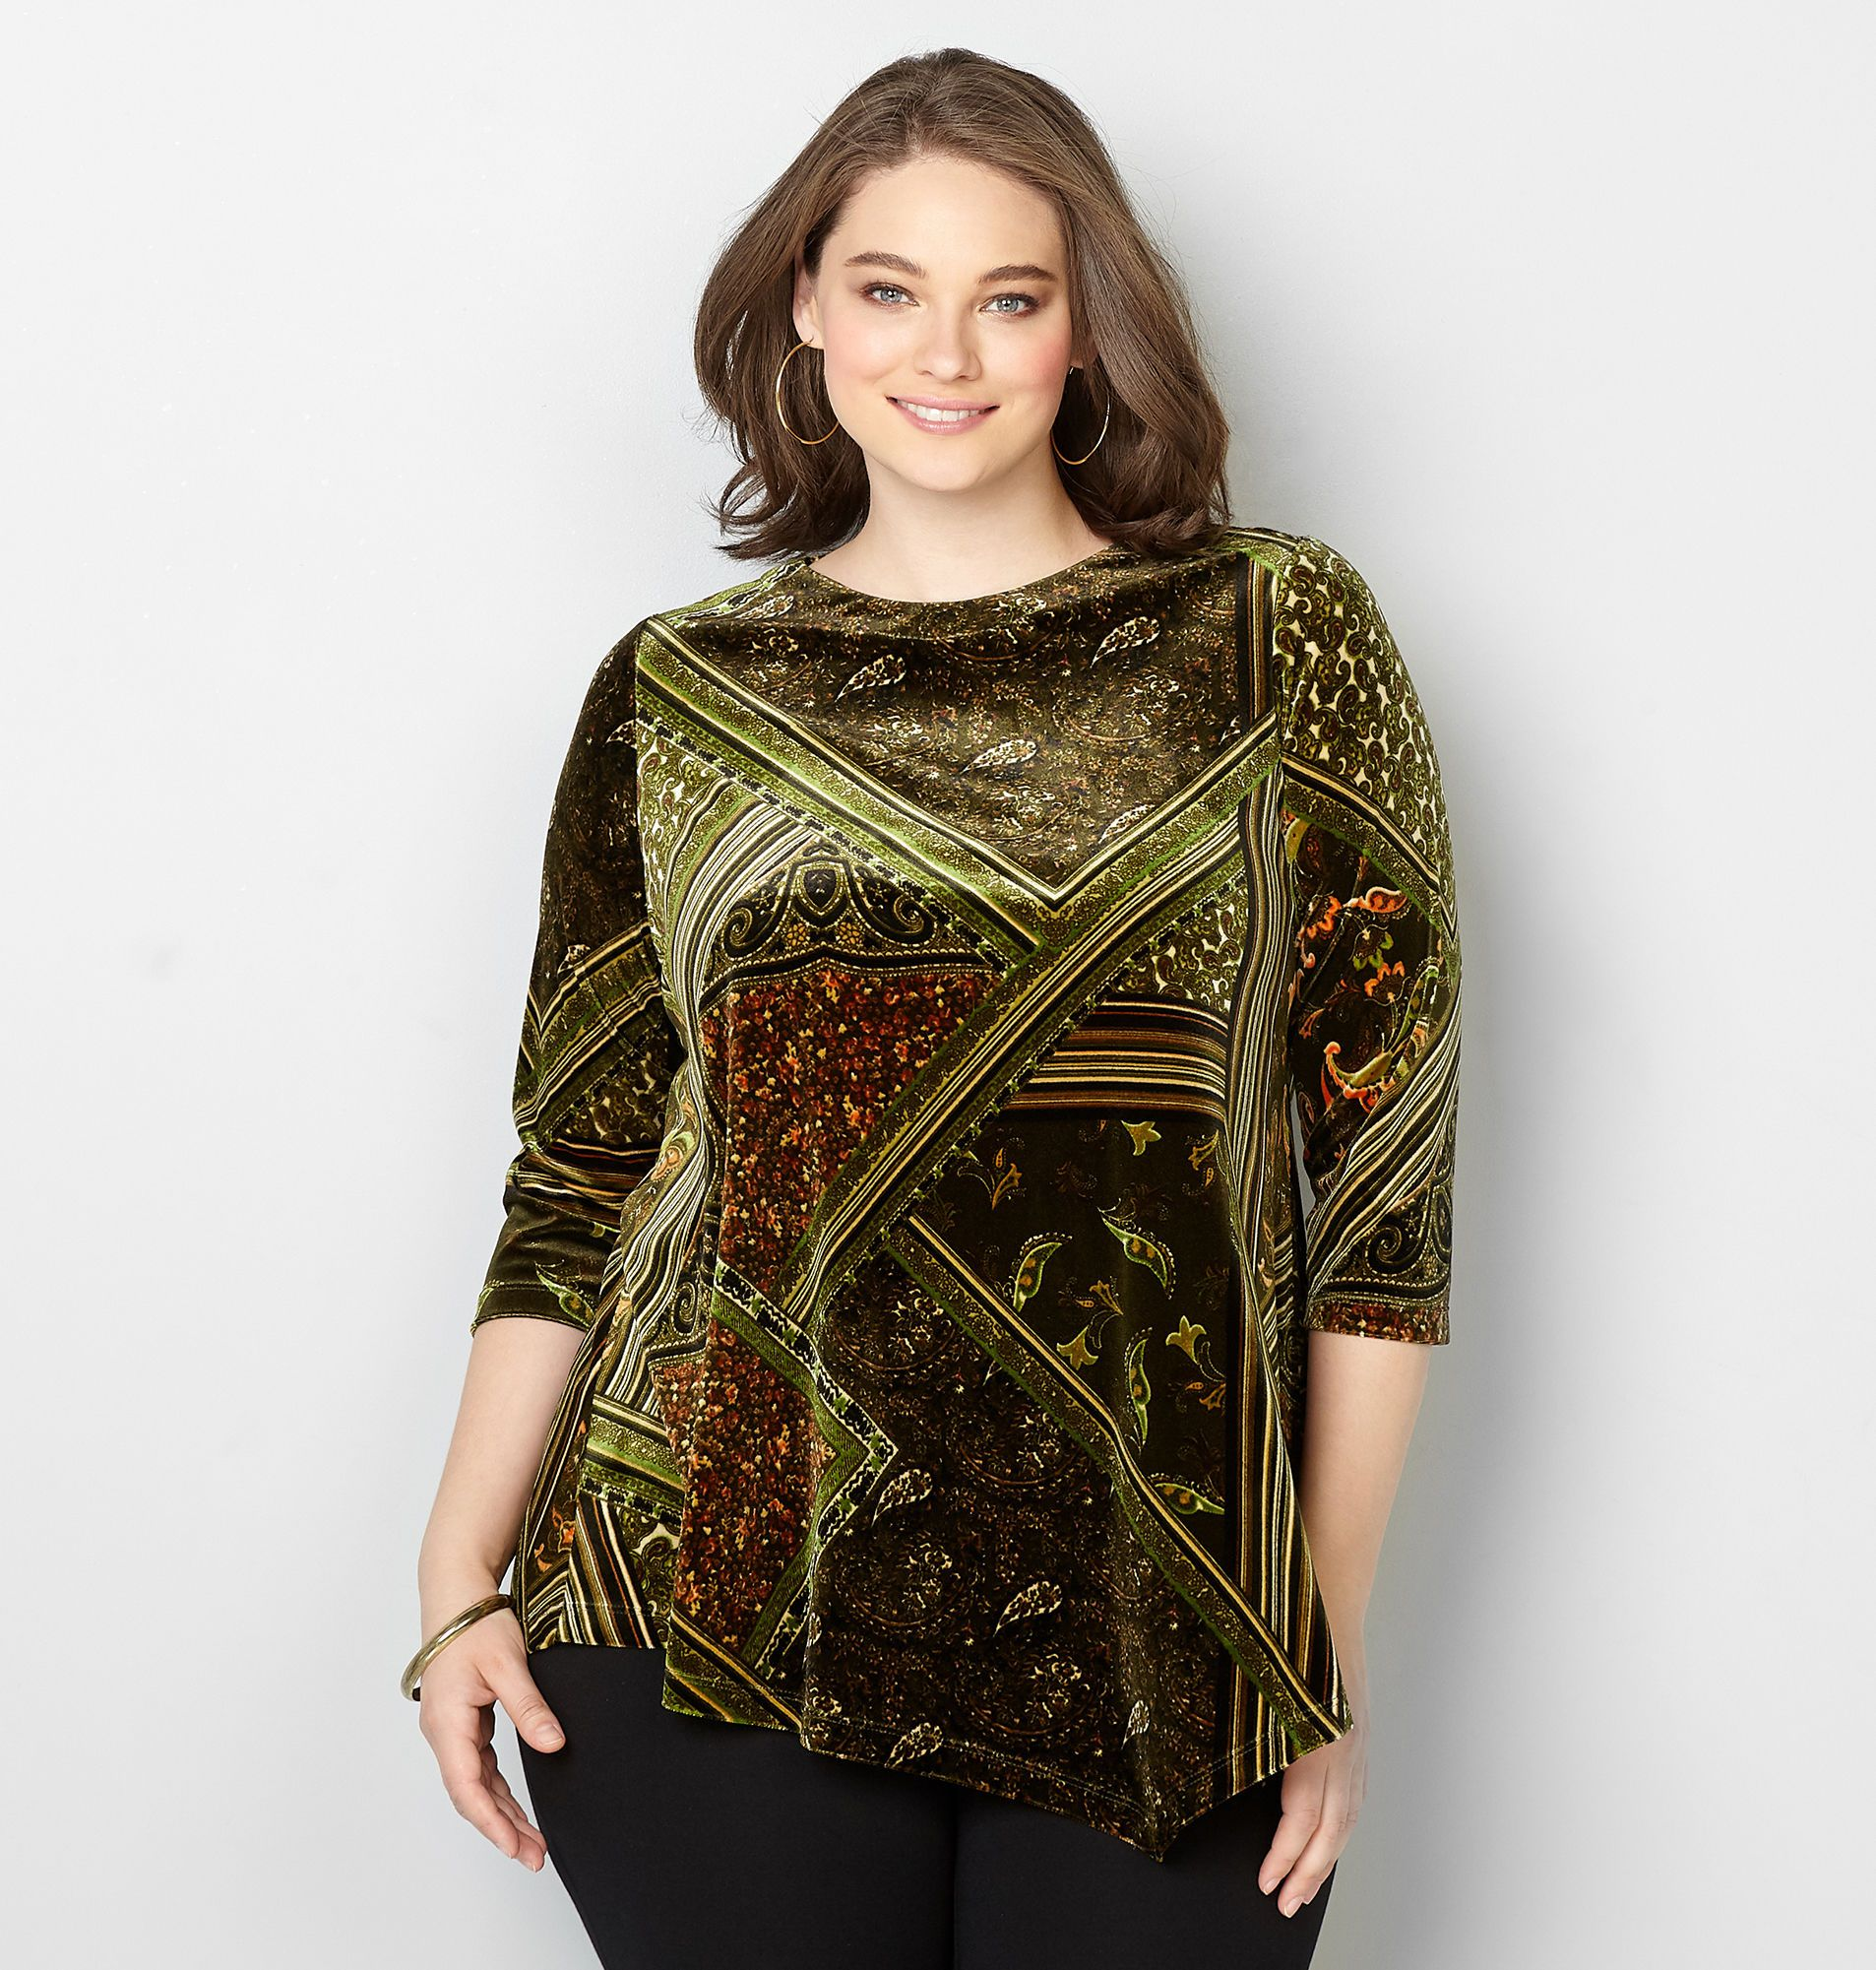 b4ea383de4 Asymmetrical Patchwork Velvet Top - Avenue Velvet Tops